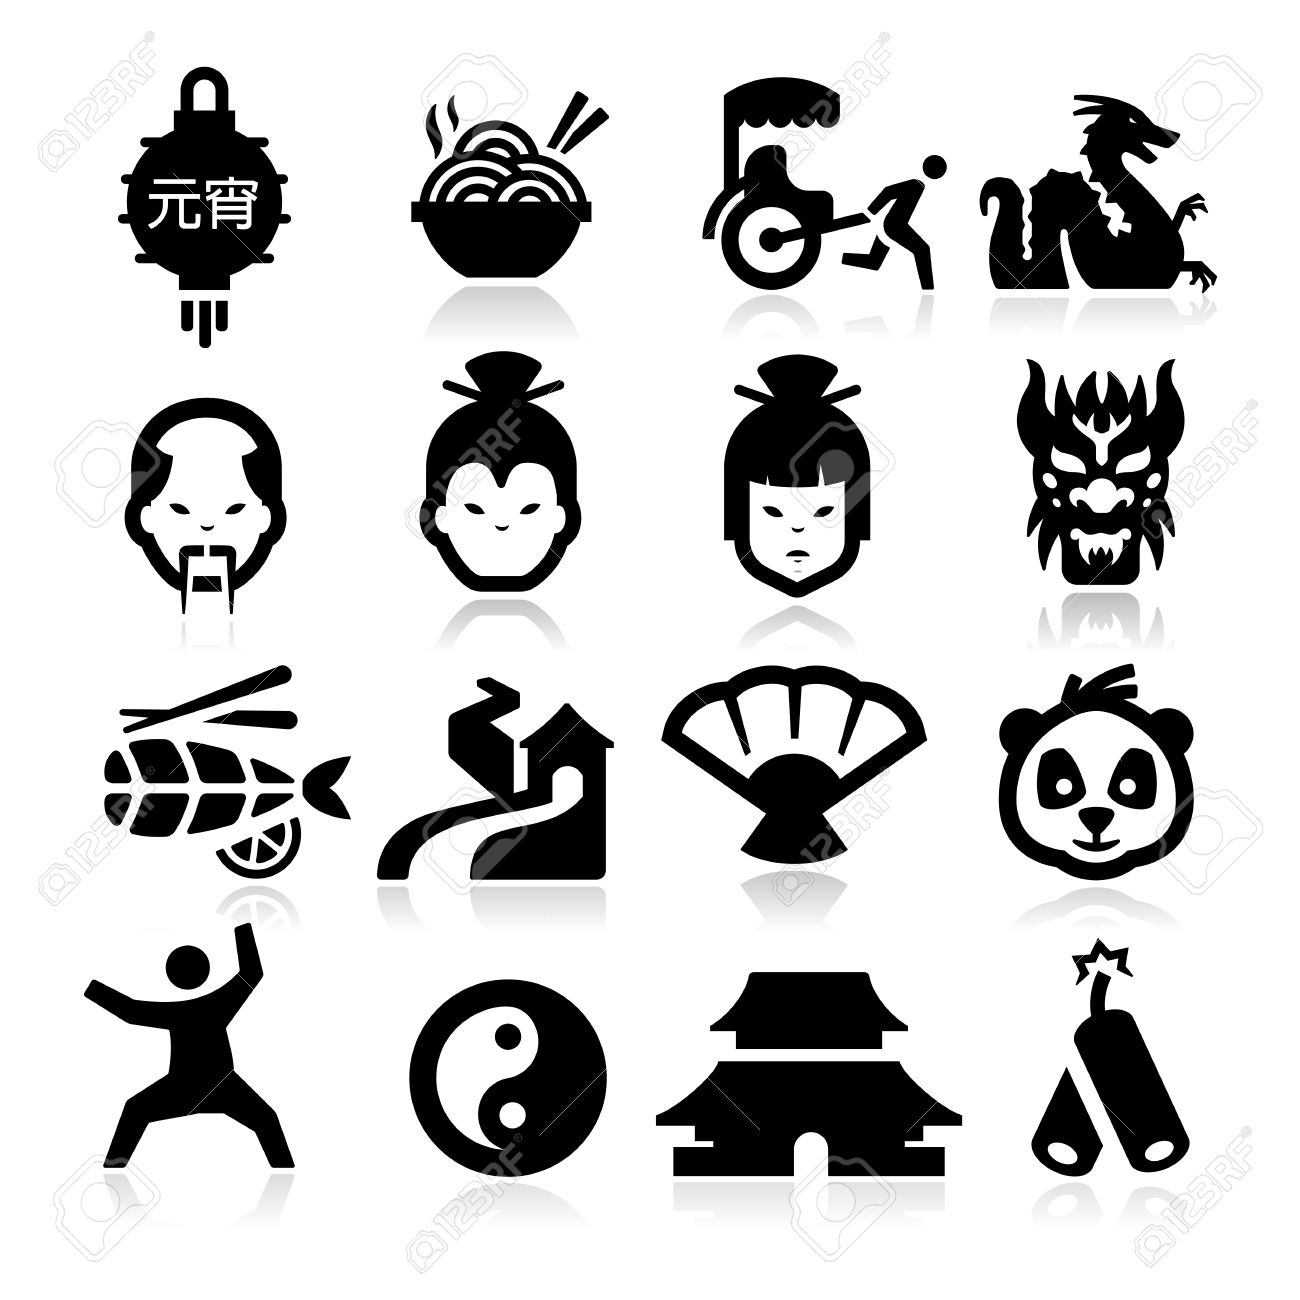 Chinese Icons - 25311402